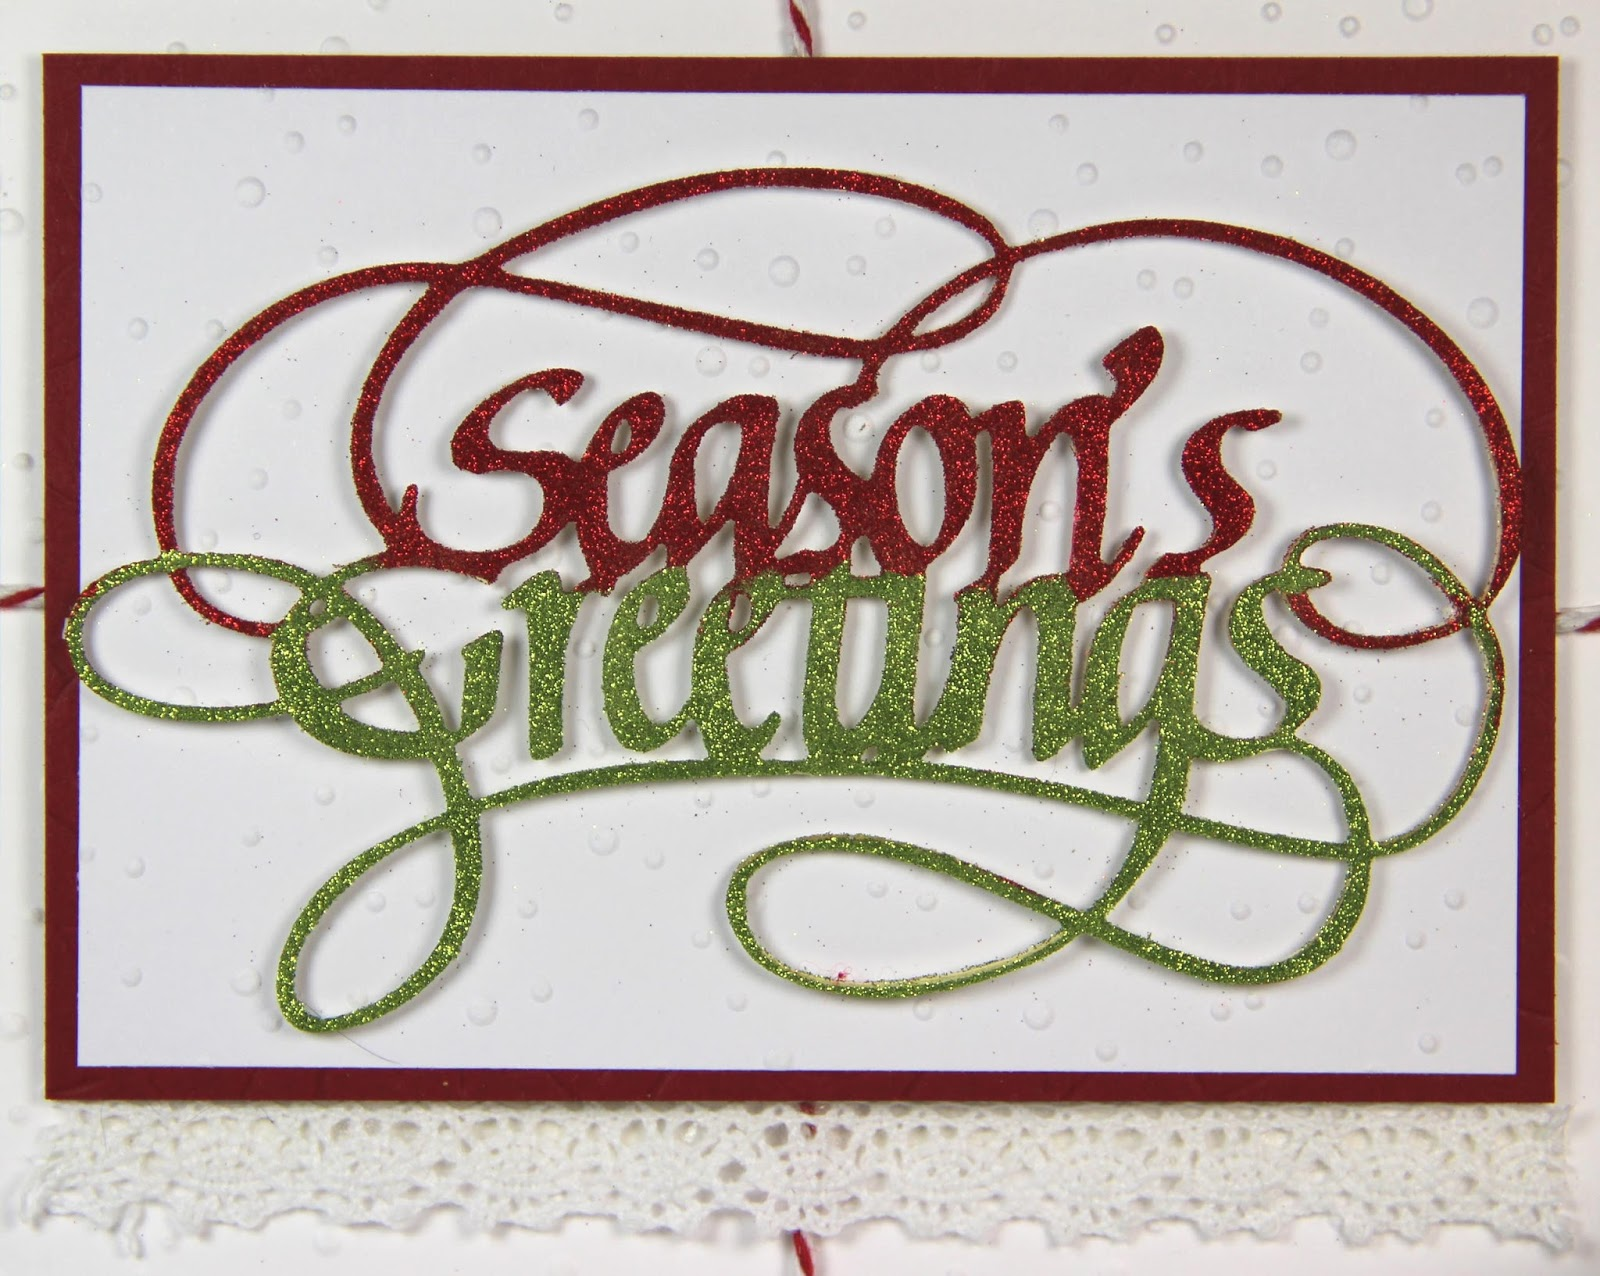 Quietfire Creations A Way With Words Season S Greetings